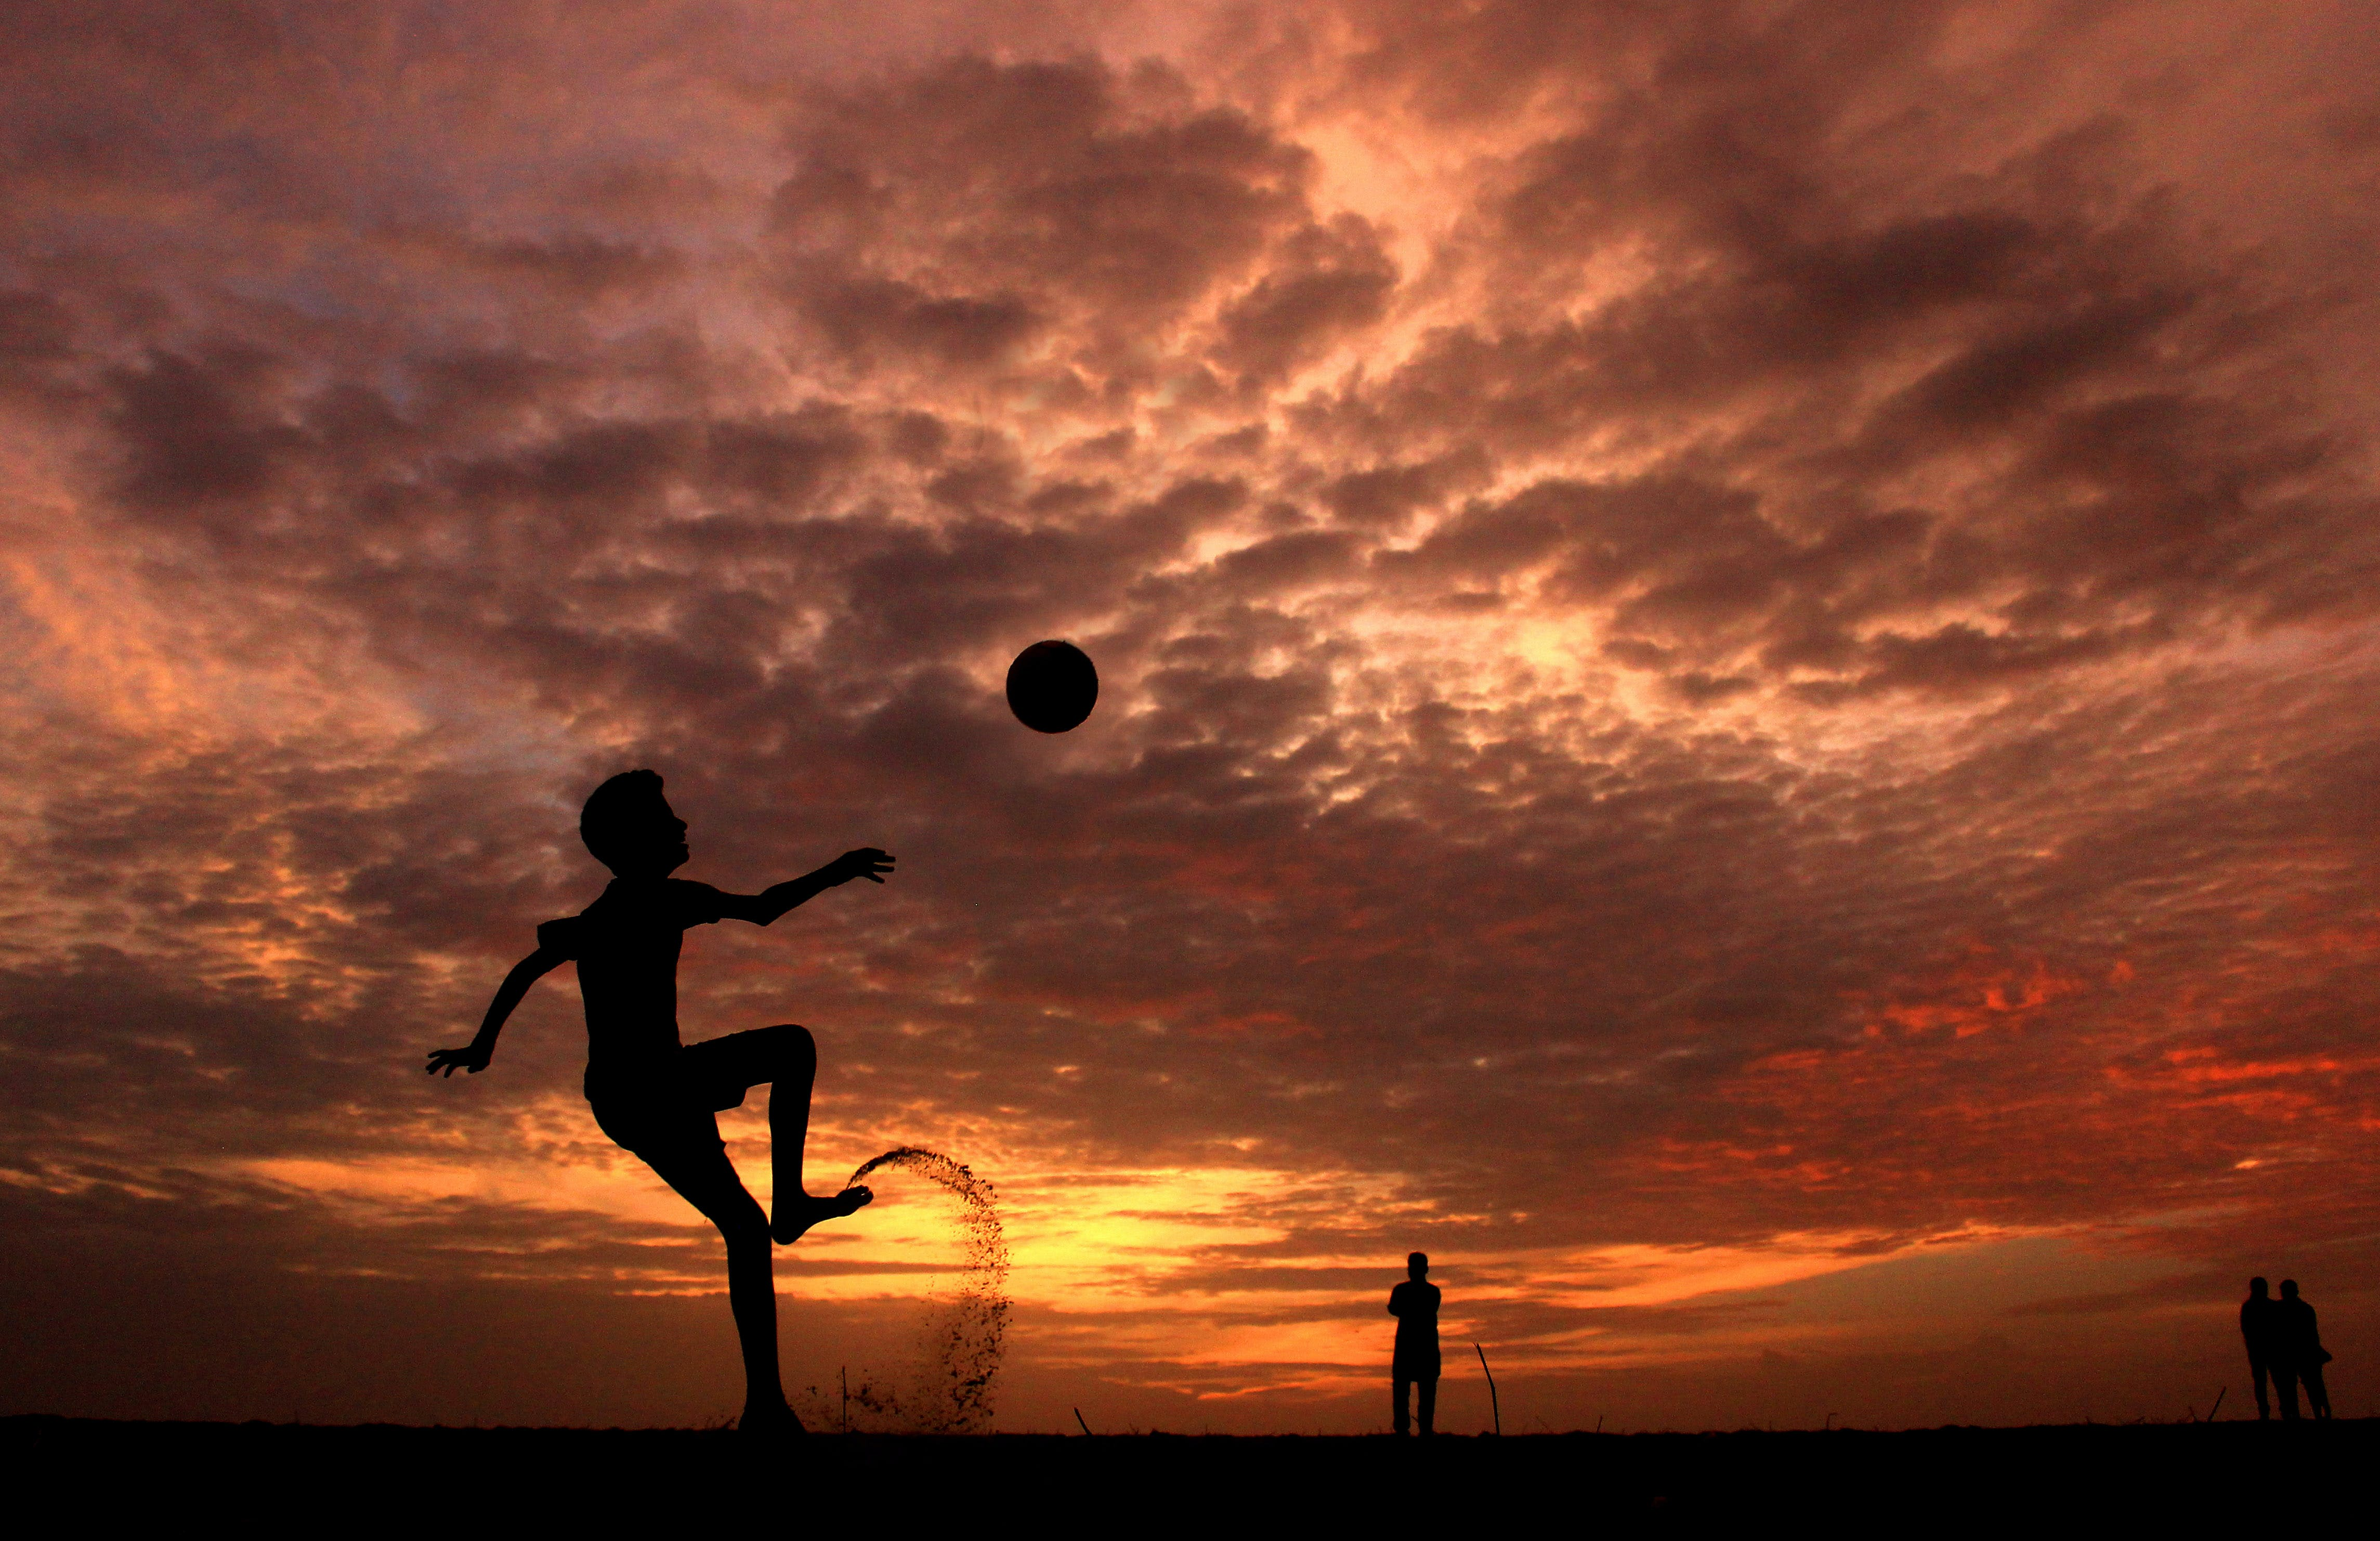 Silhouette of a Boy Playing Ball during Sunset